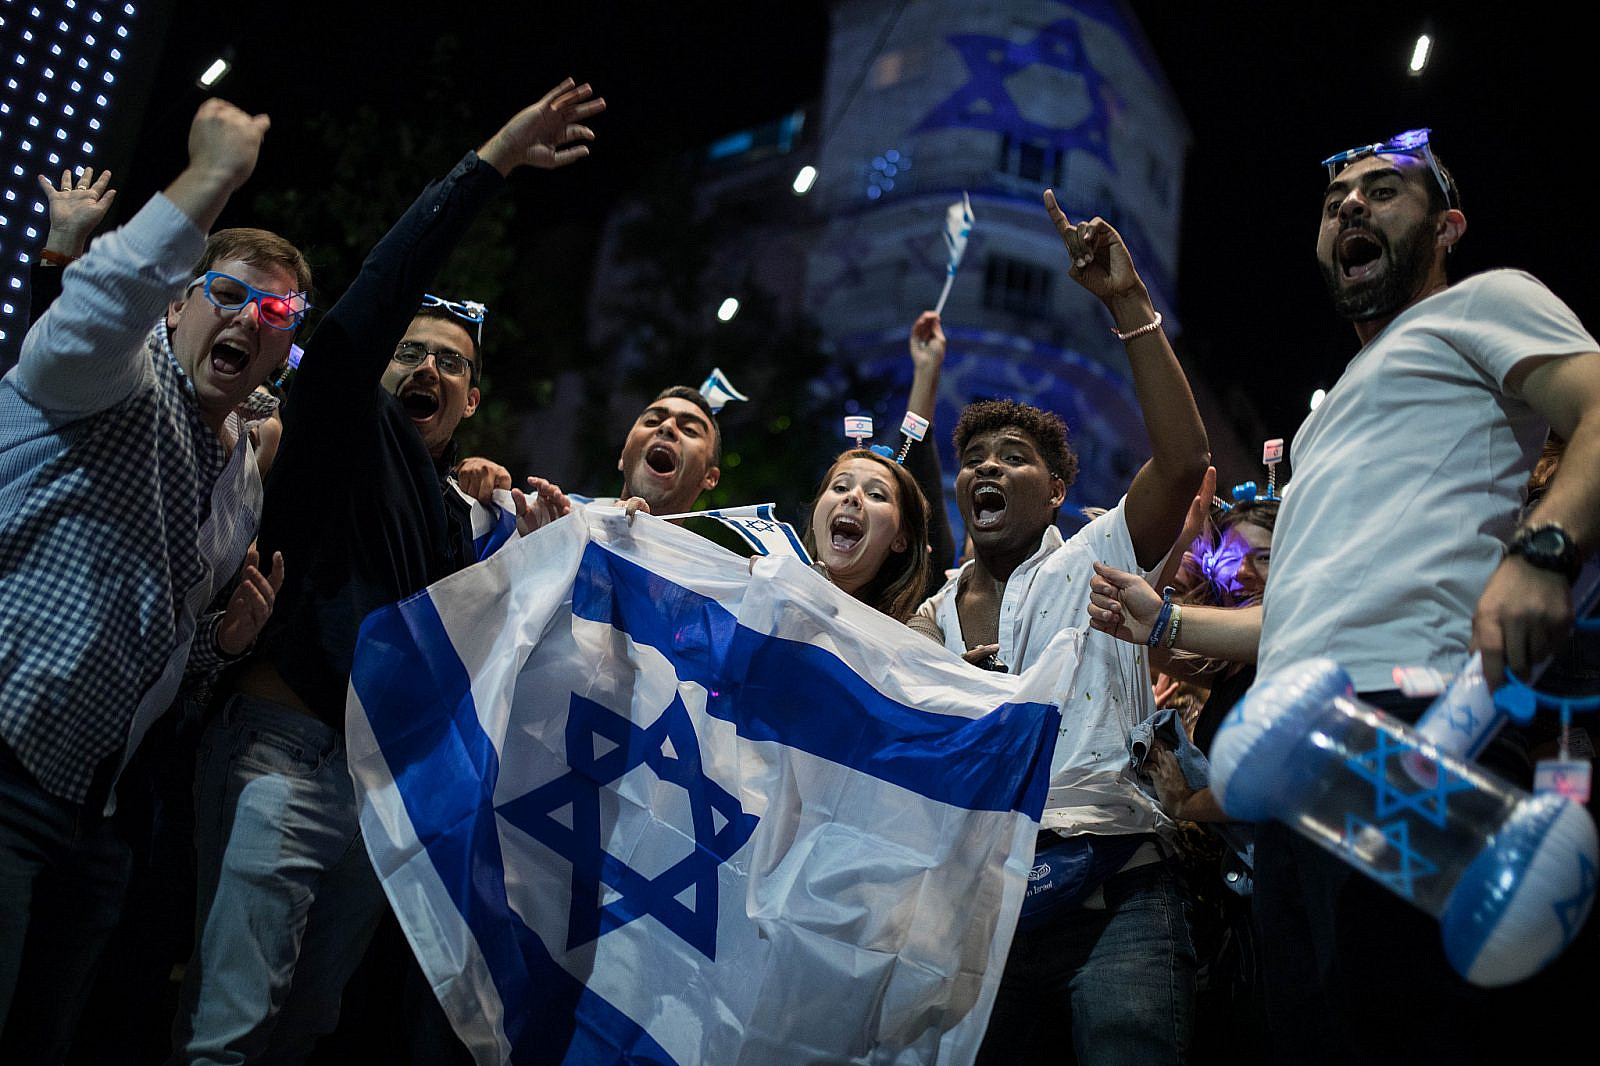 People wear Israeli flags as they take part in celebrations marking Israel's 71st Independence Day in Jerusalem, May 8, 2019. (Hadas Parush/Flash90)